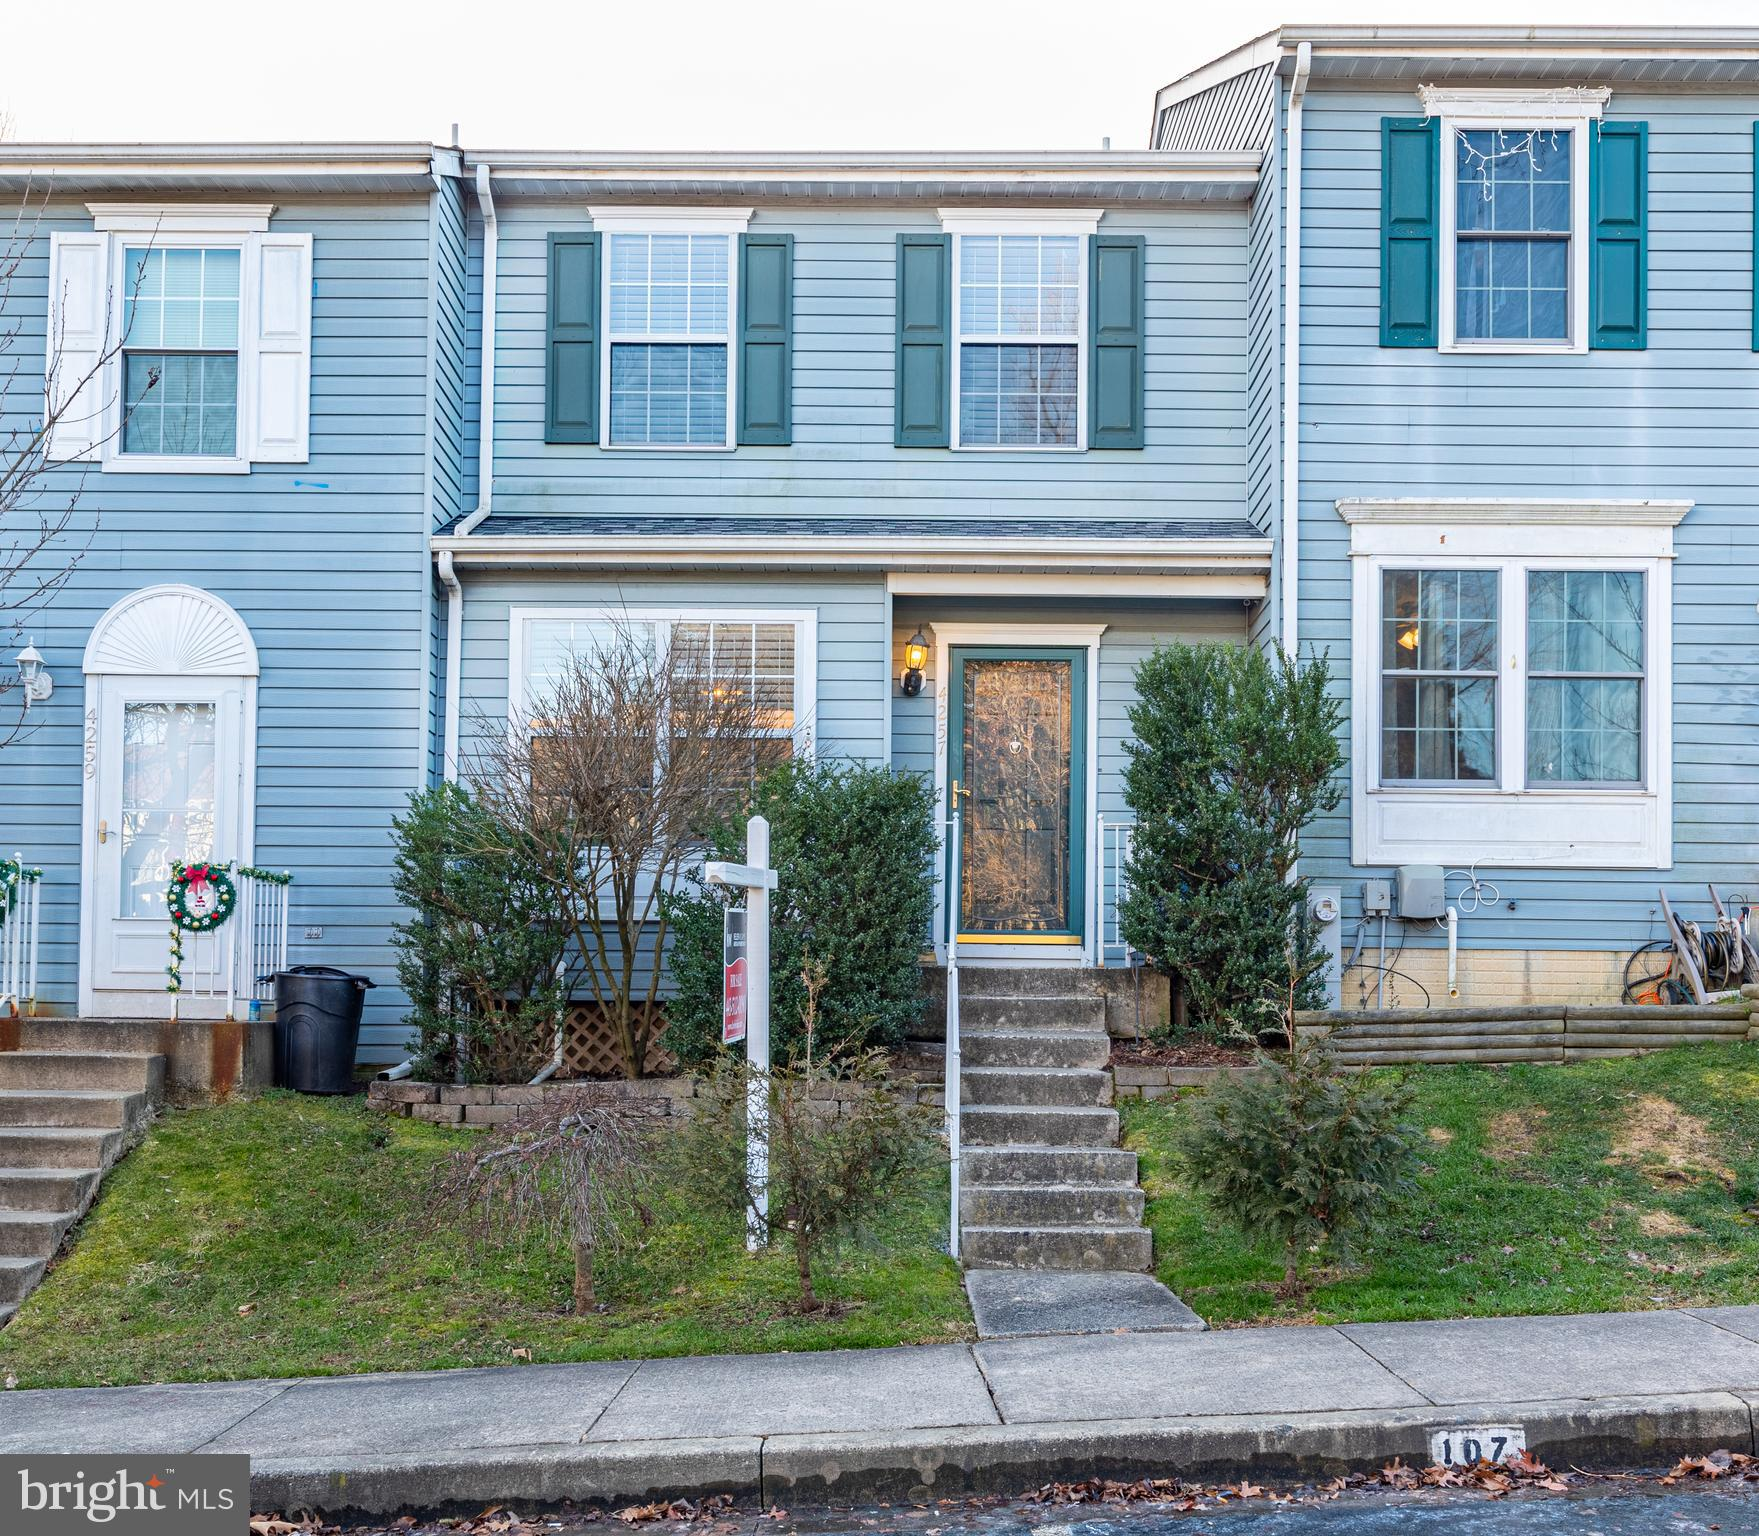 OPEN HOUSE SATURDAY 12-2.  Well-cared for spacious townhouse in walking distance to shopping. Conven